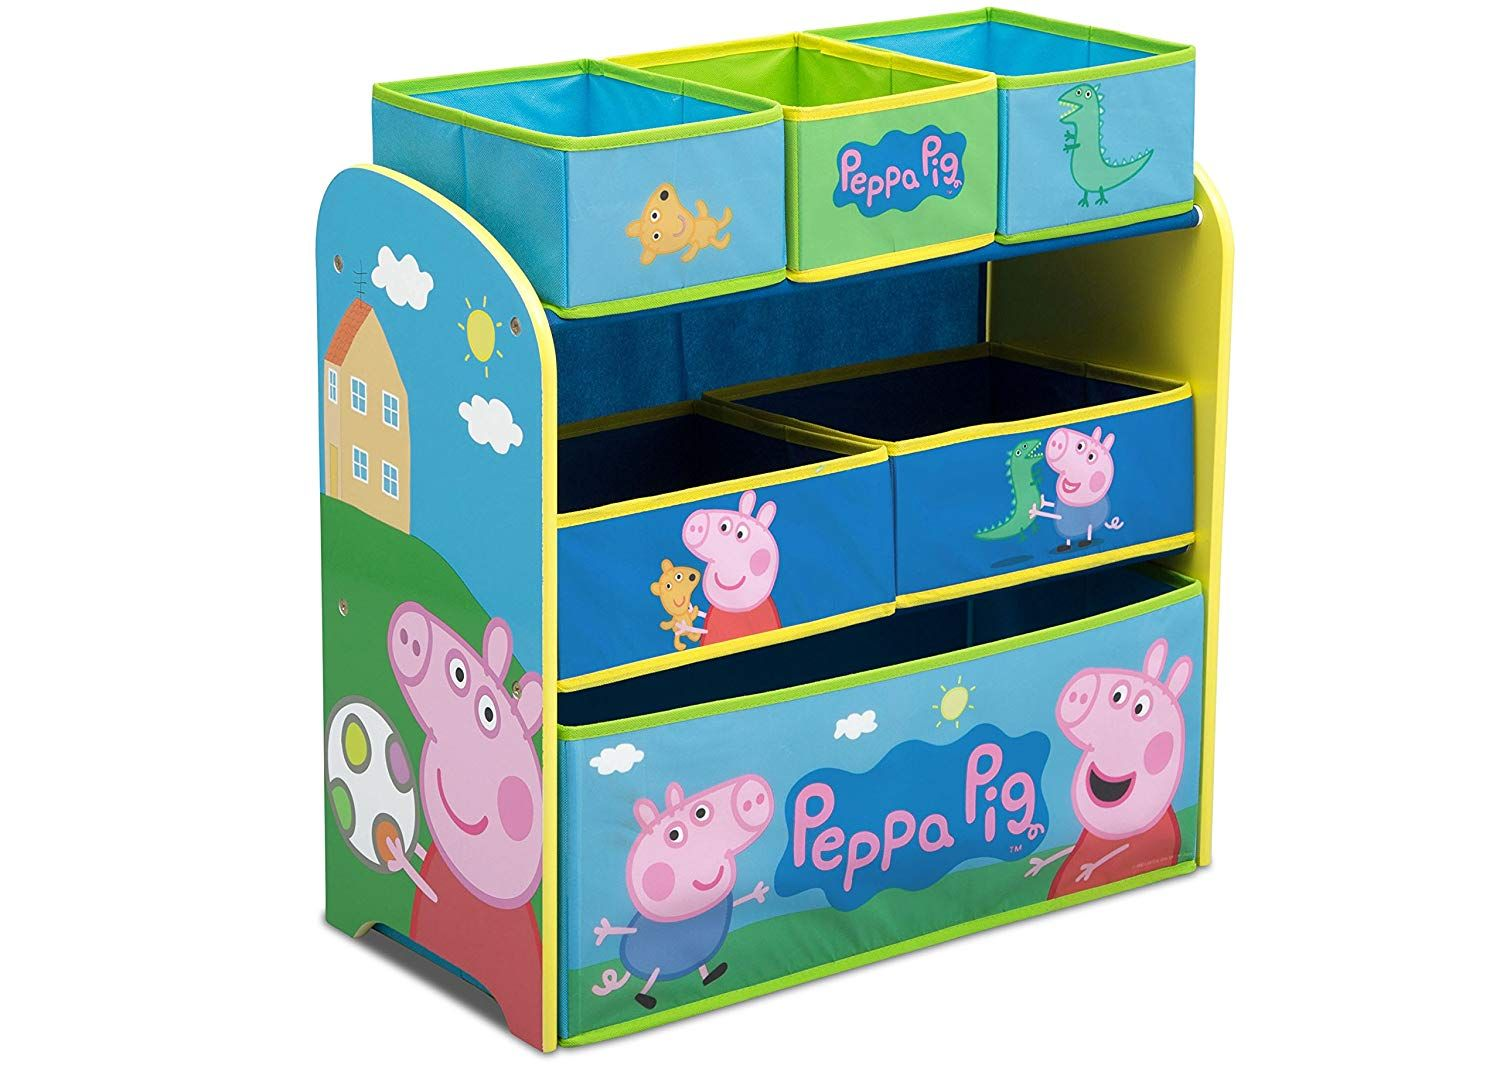 Multi Bin Toy Organizer Peppa Pig Recognizable Characters Stylish Storage Solutionthe Storage Solution Toy Organization Toy Storage Organization Peppa Pig